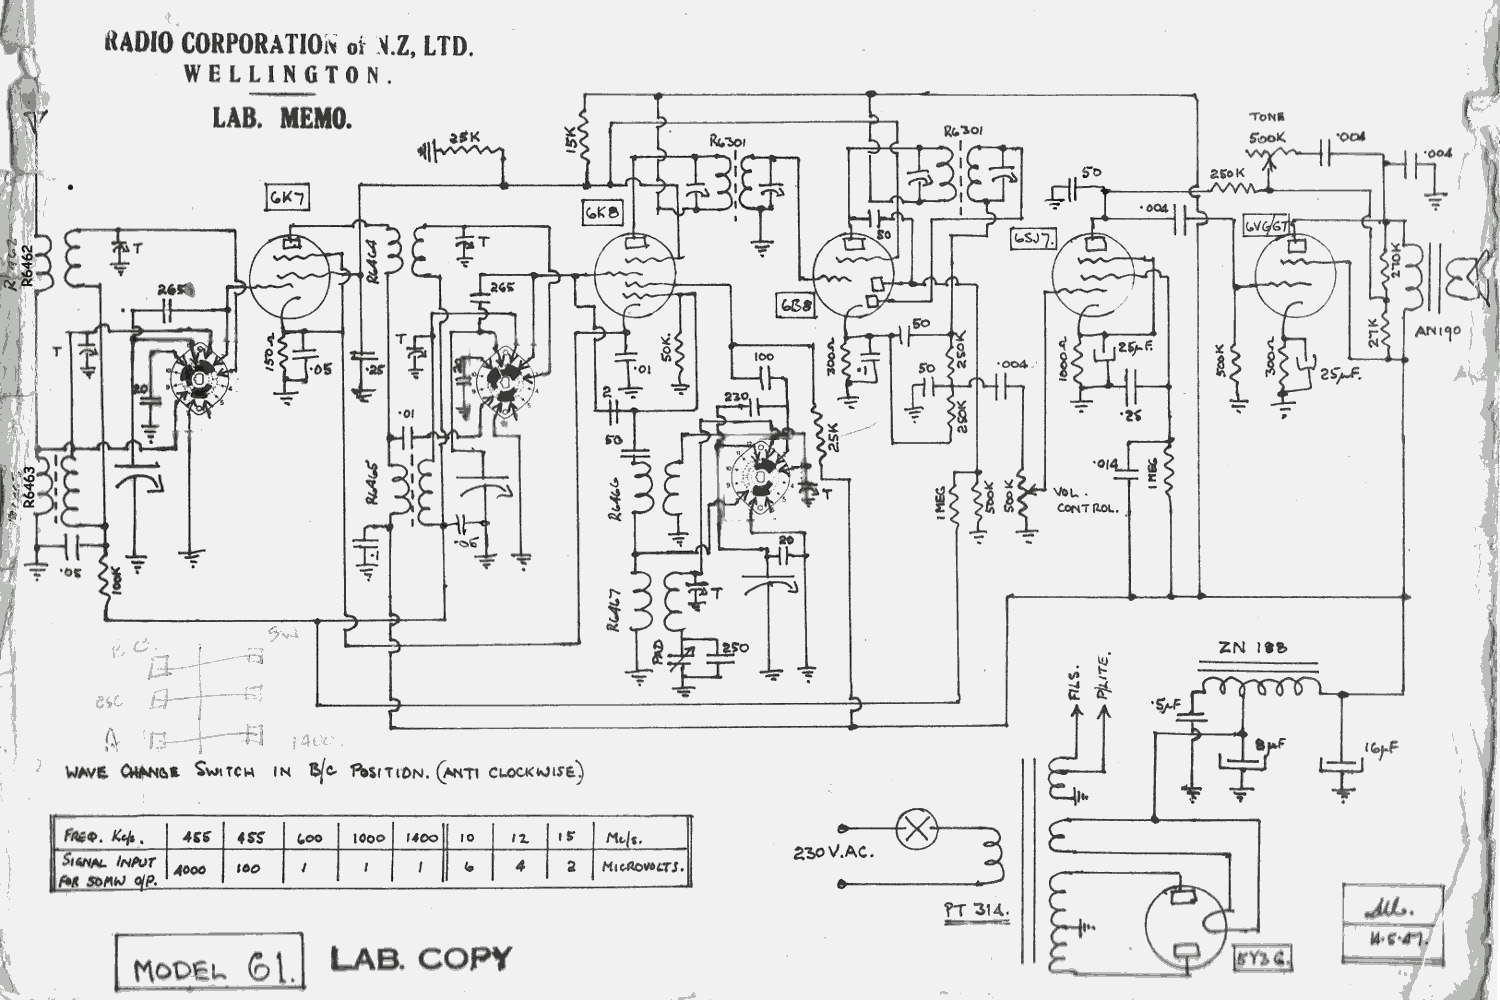 1947 Columbus & Courtenay model 61 Lab Schematic